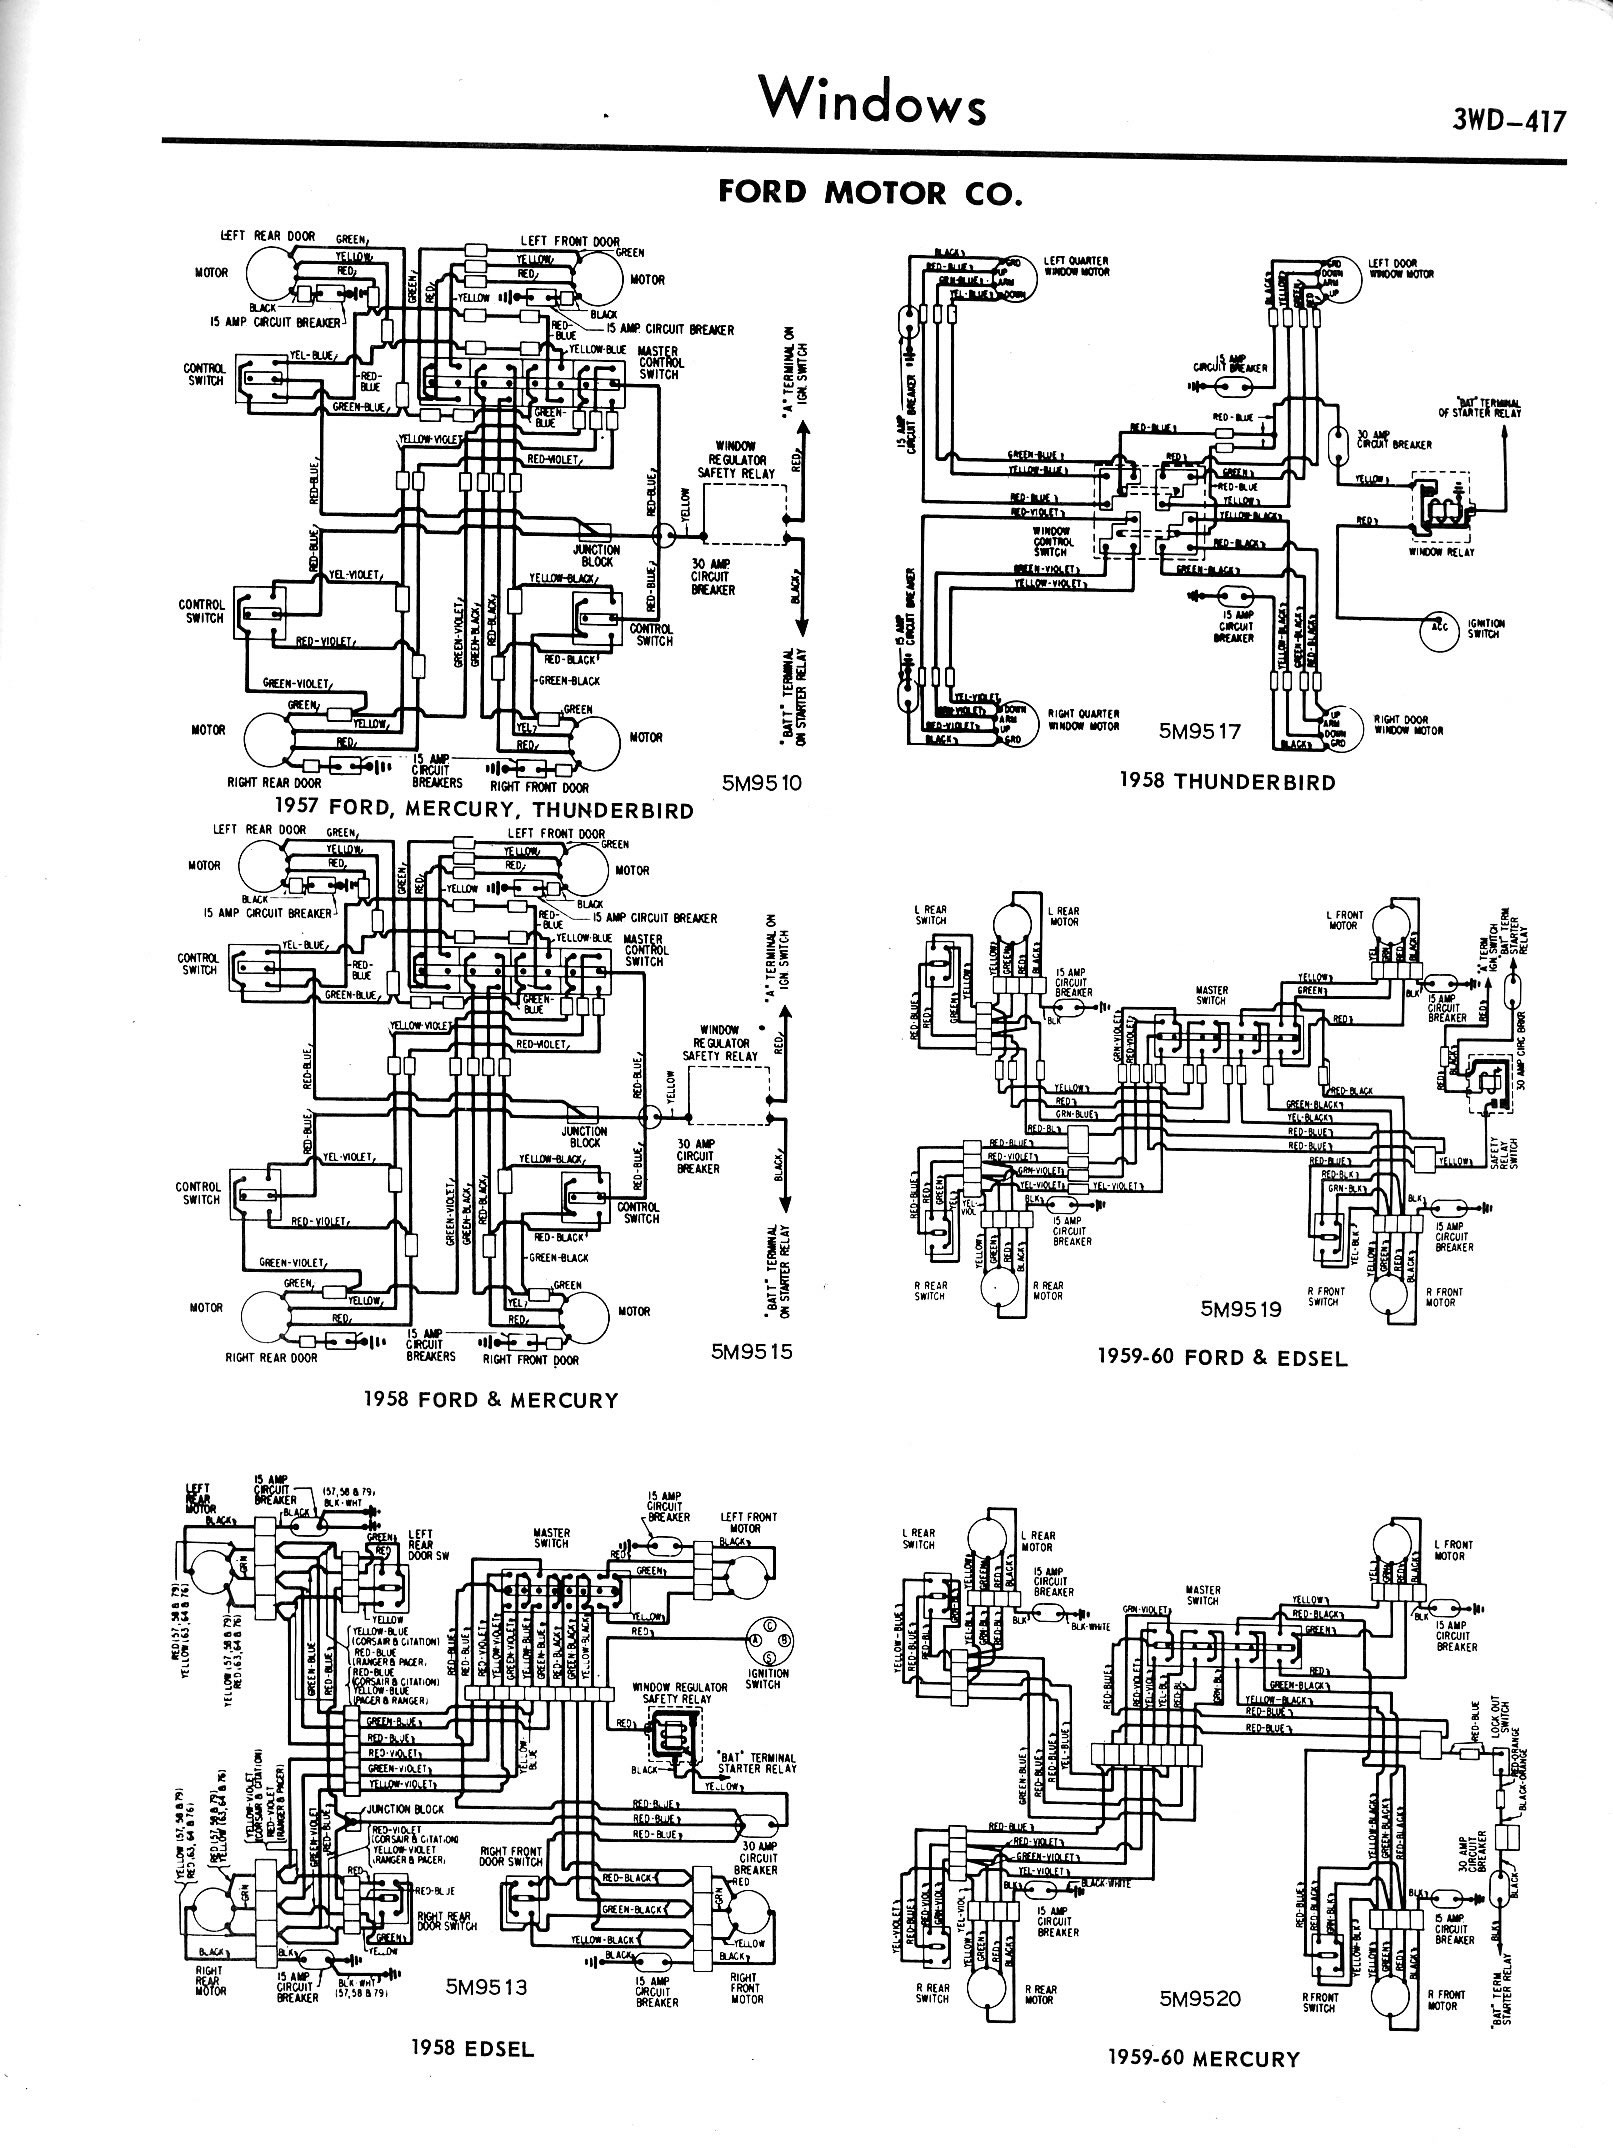 painless gm column wiring diagram